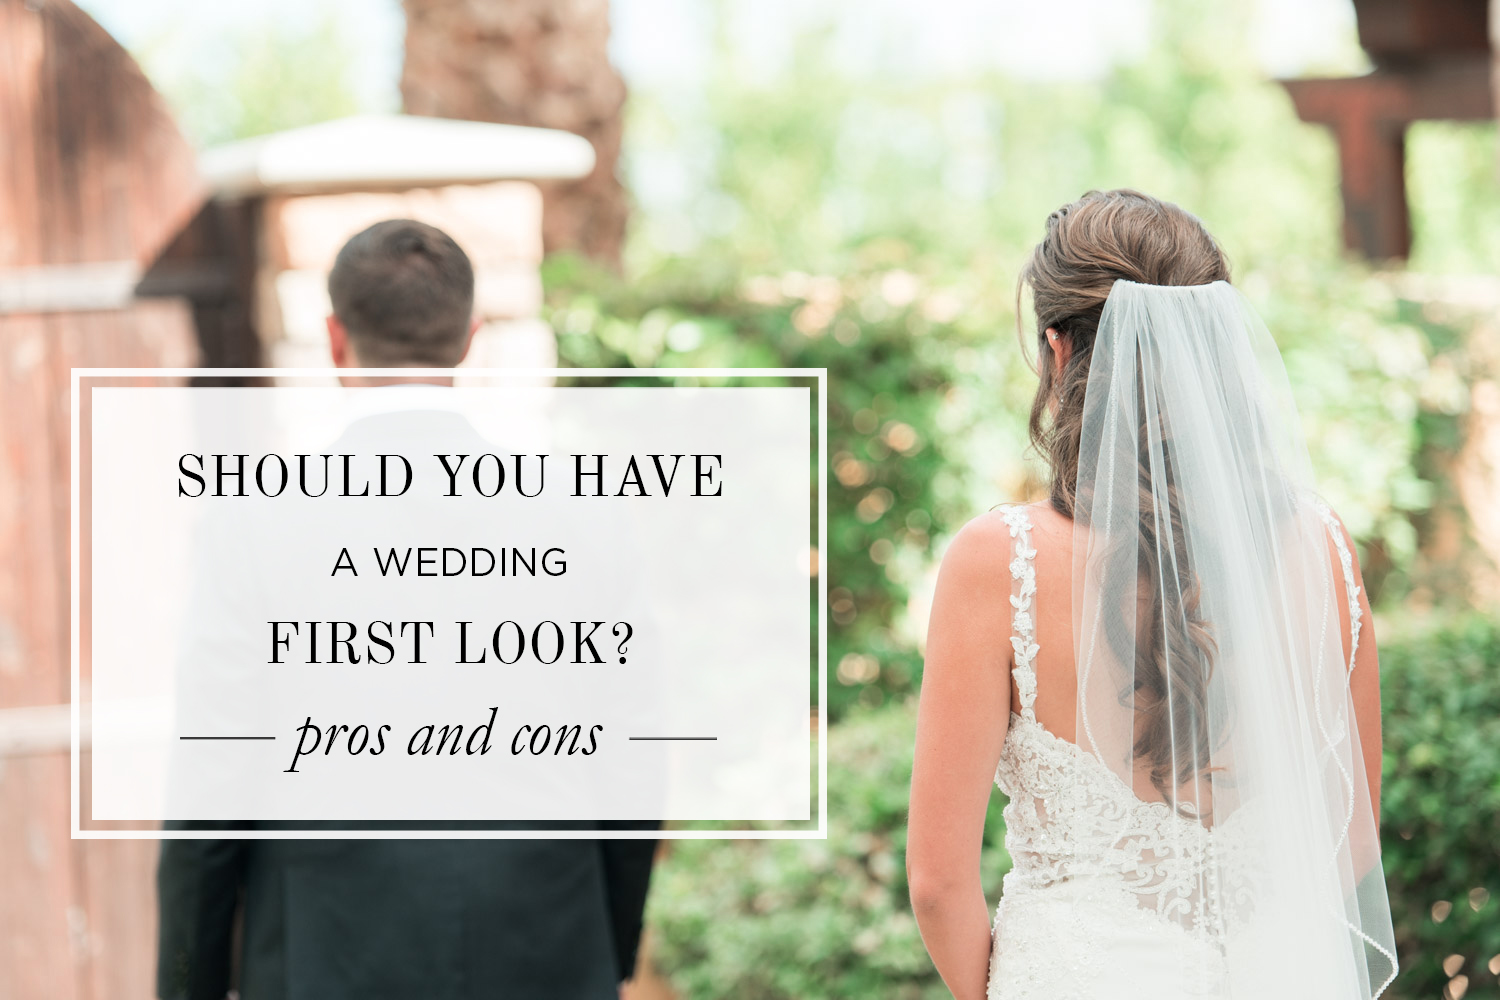 Should You Have a First Look for Your Wedding